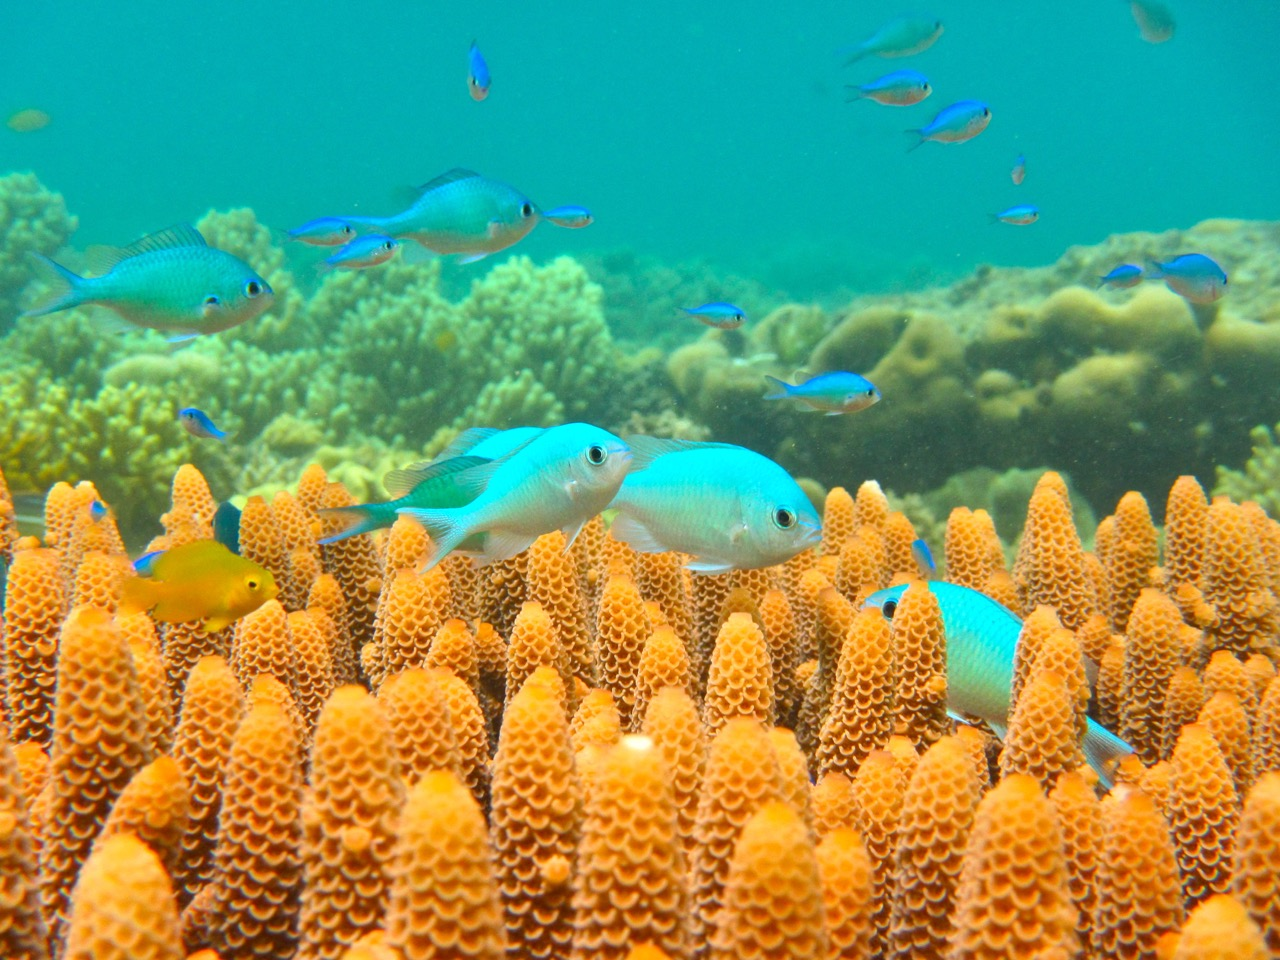 As oceans warm, coral reef fish might prefer to move rather than adapt